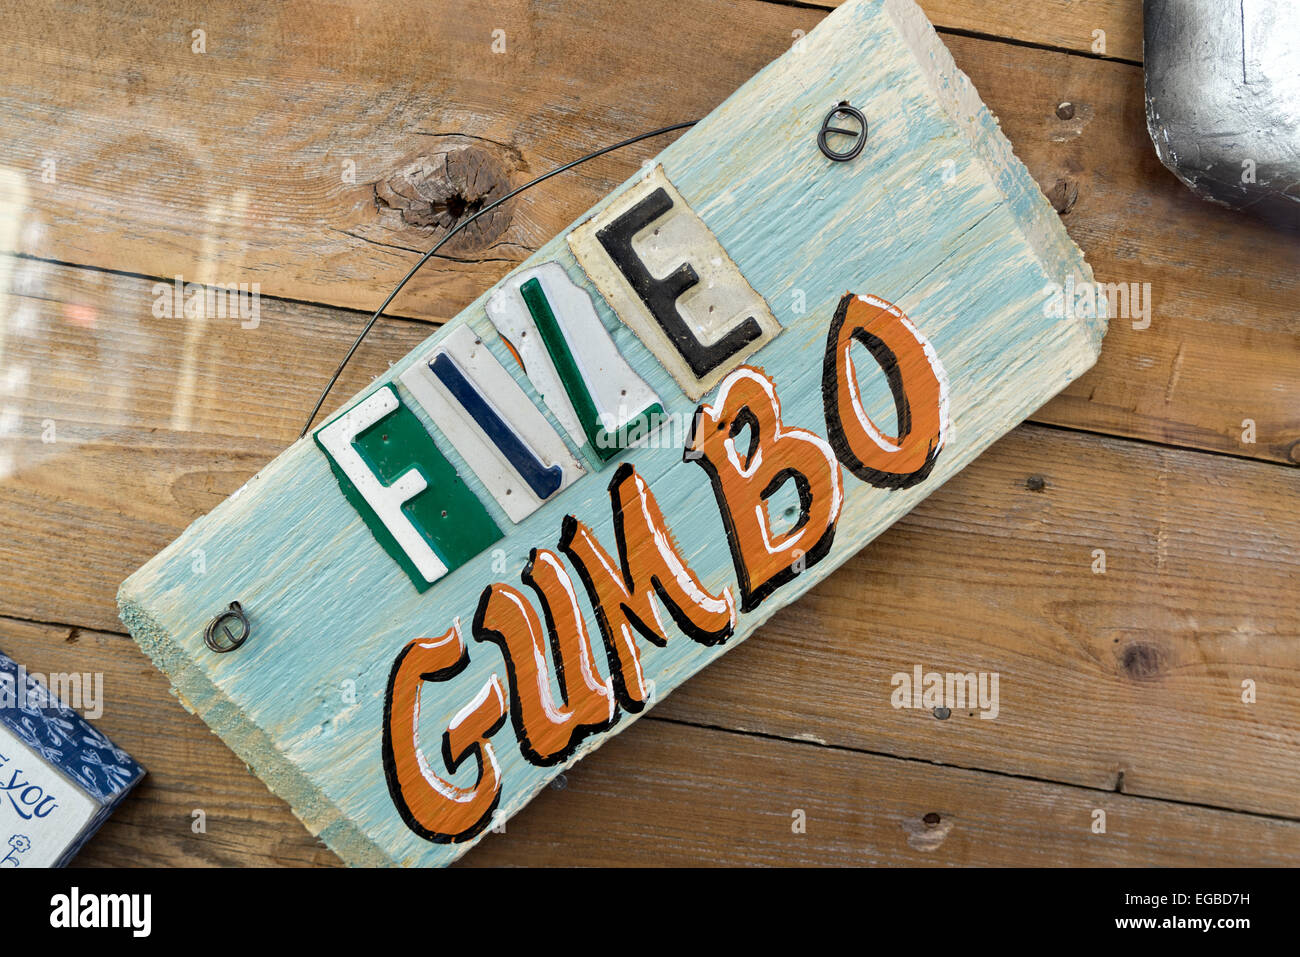 Decorative Wooden File Gumbo Sign, New Orleans, LA.   File Gumbo is a type of soup. - Stock Image